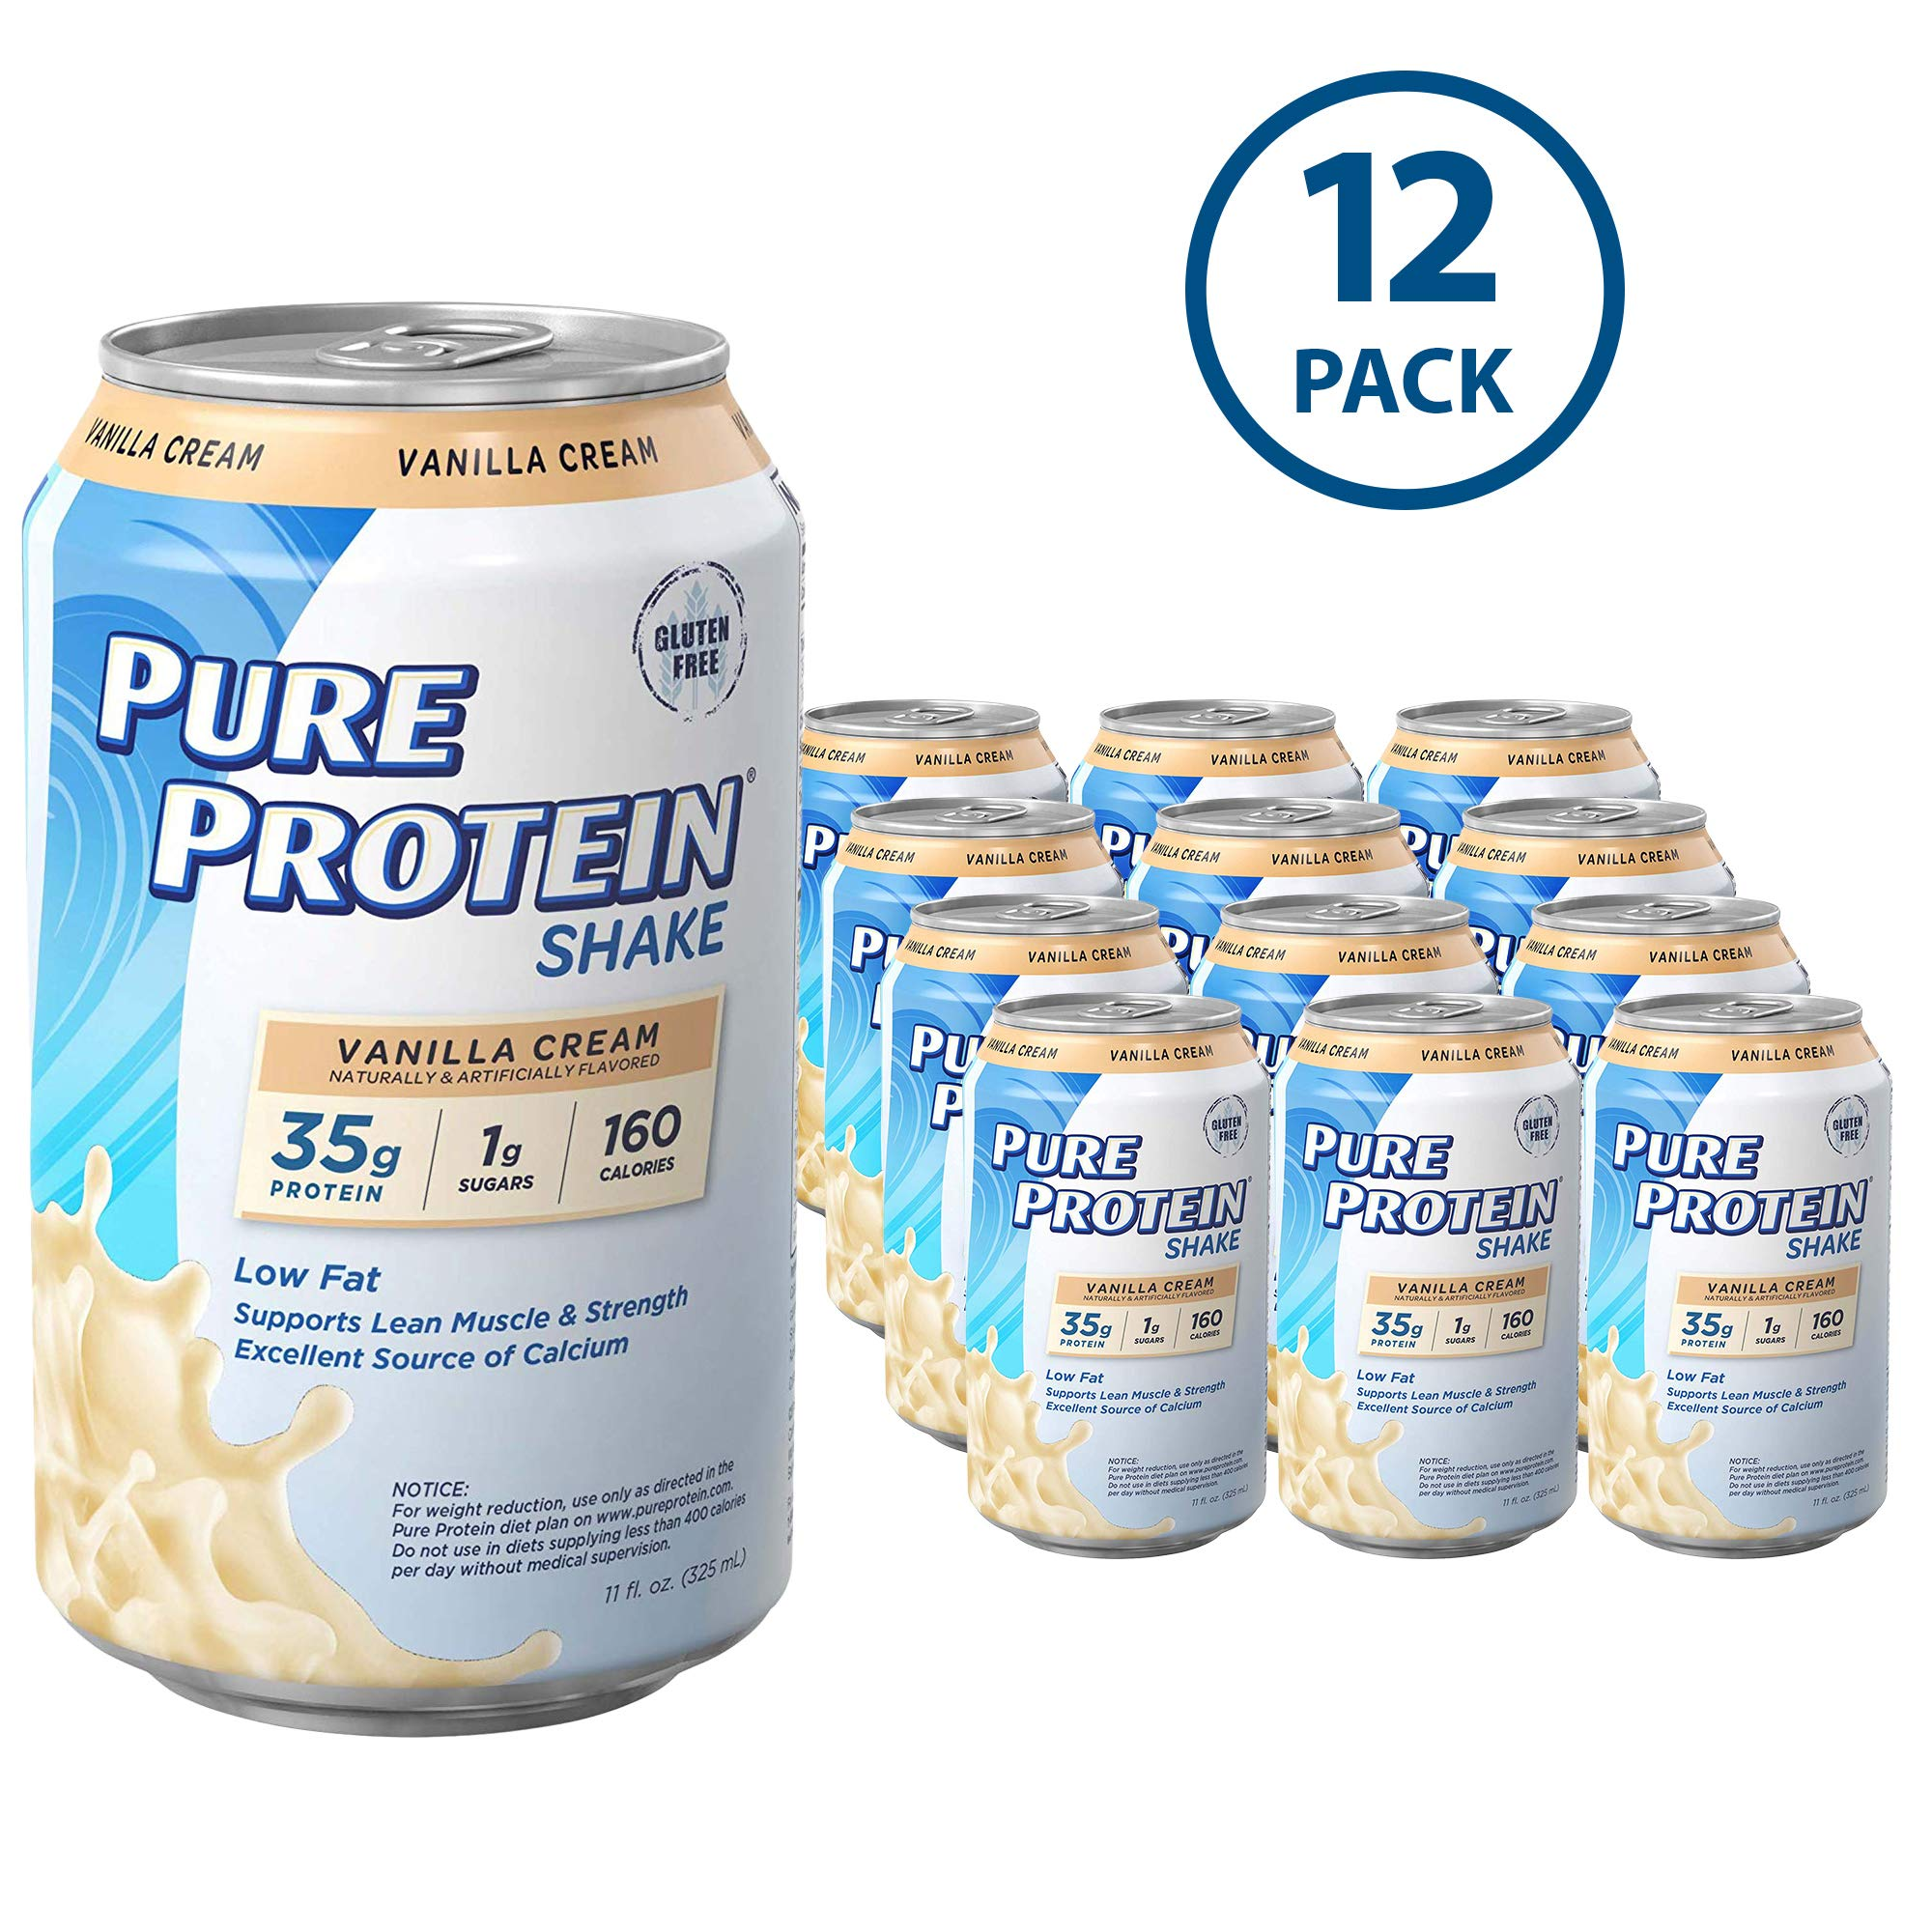 Pure Protein Ready to Drink Shakes, High Protein Vanilla Cream, 11oz, 12 count by Pure Protein